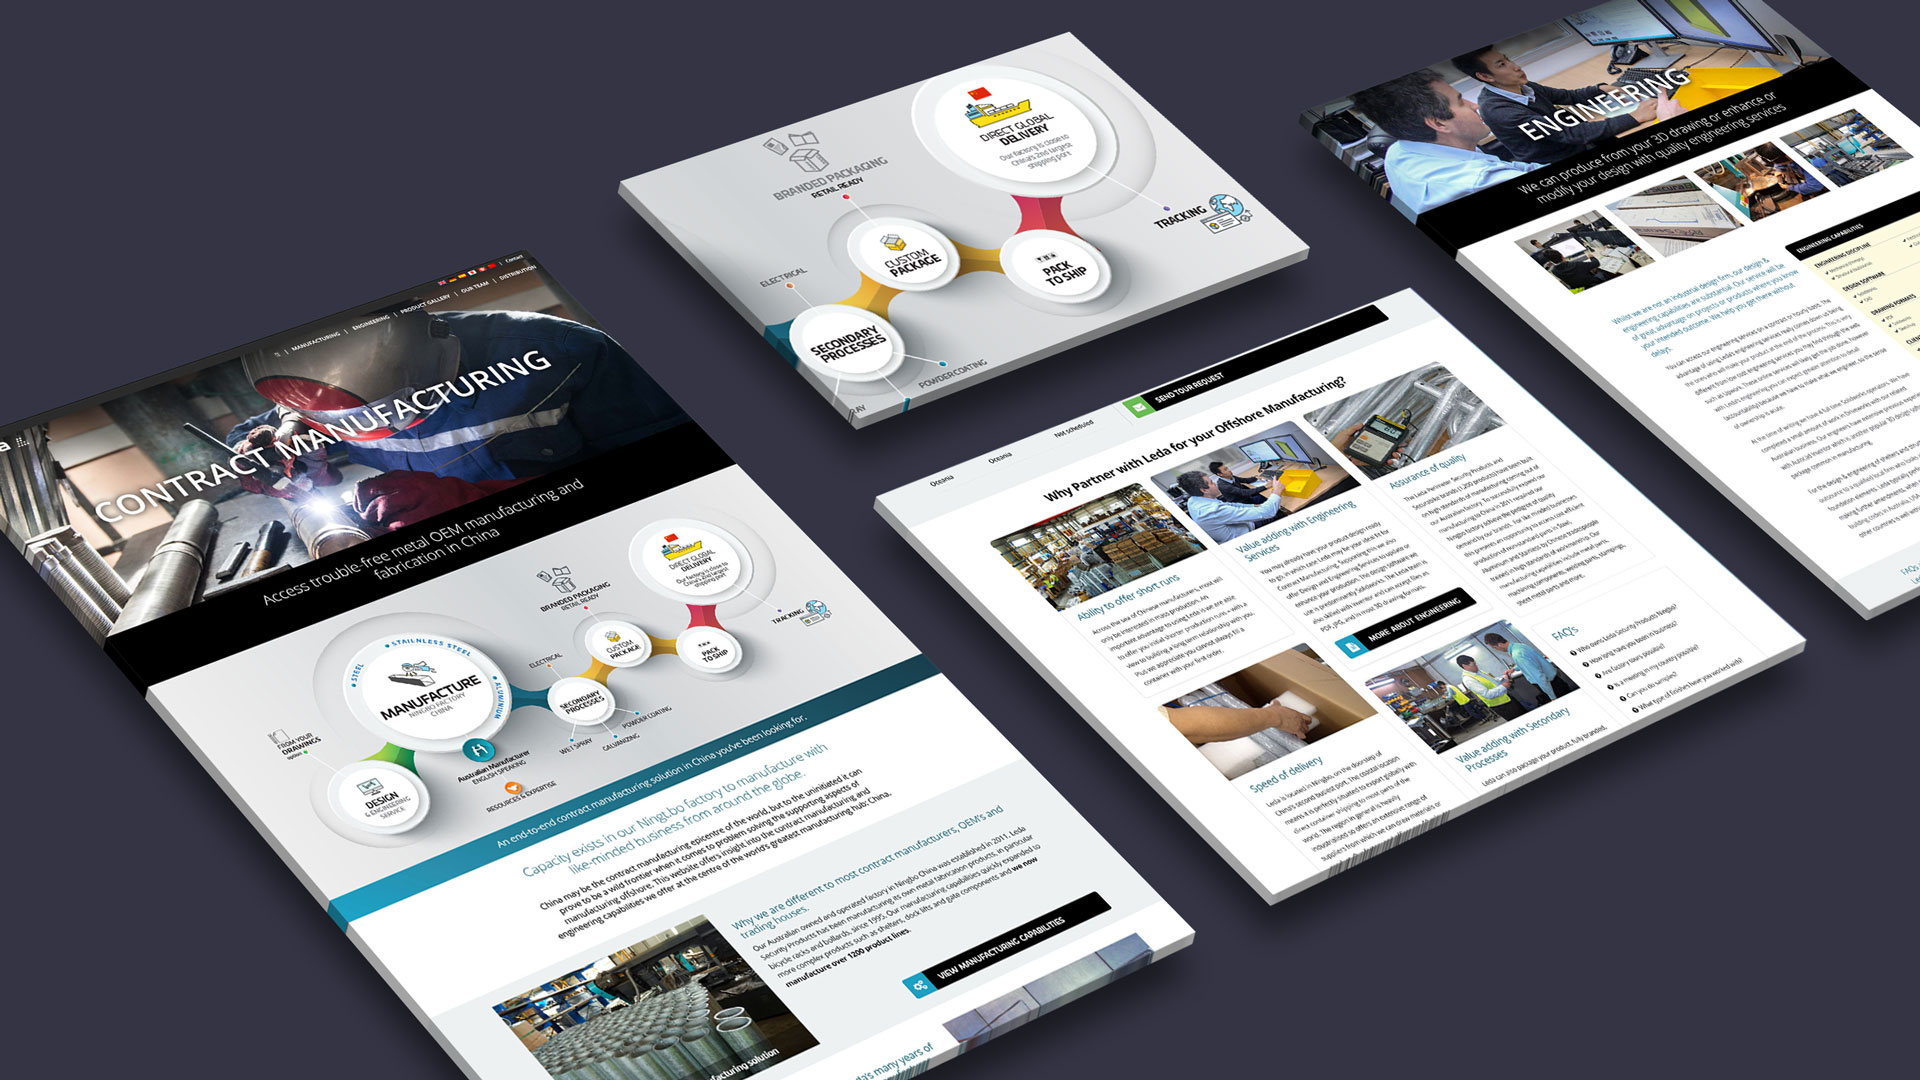 Website Design, Art Direction, Writing and Graphic Content